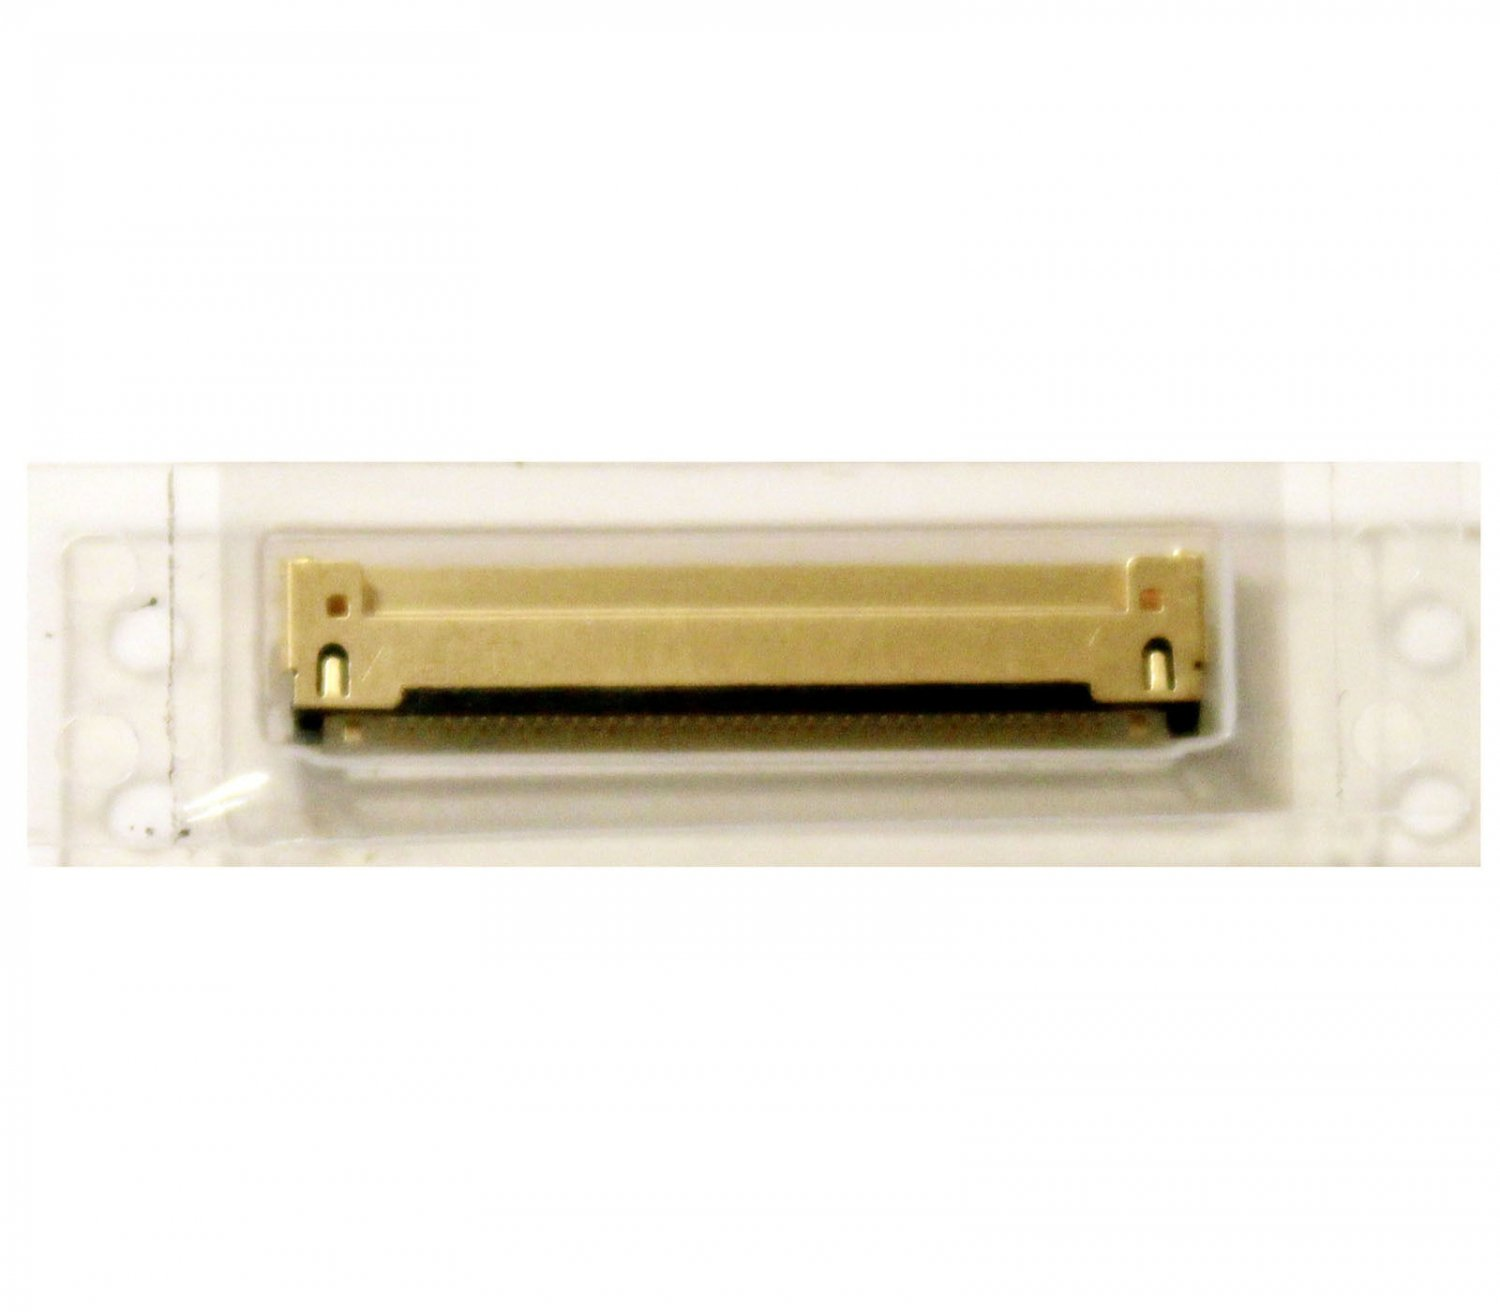 New Apple MacBook Pro A1297 A1286 LCD LED LVDS Cable Connector 40 pins